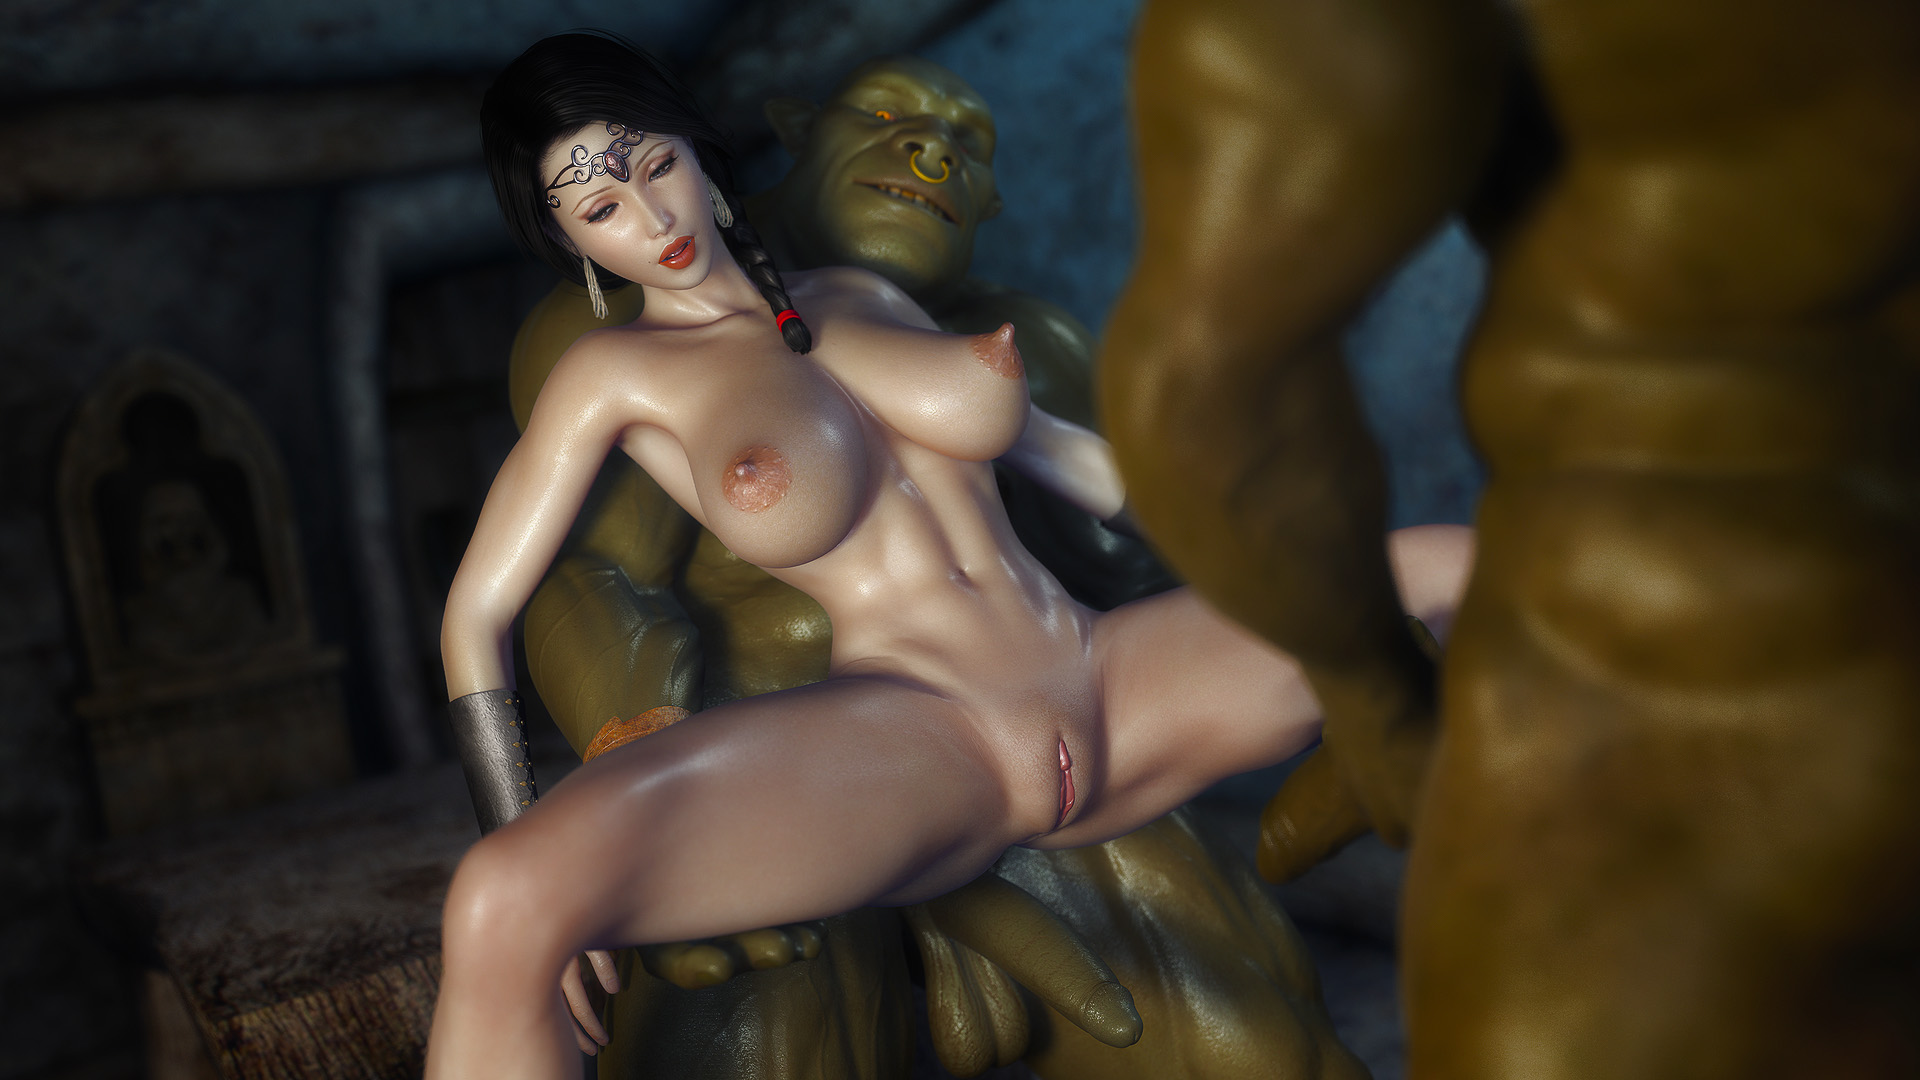 Fantasy massive orc dick fanfic exploited gallery